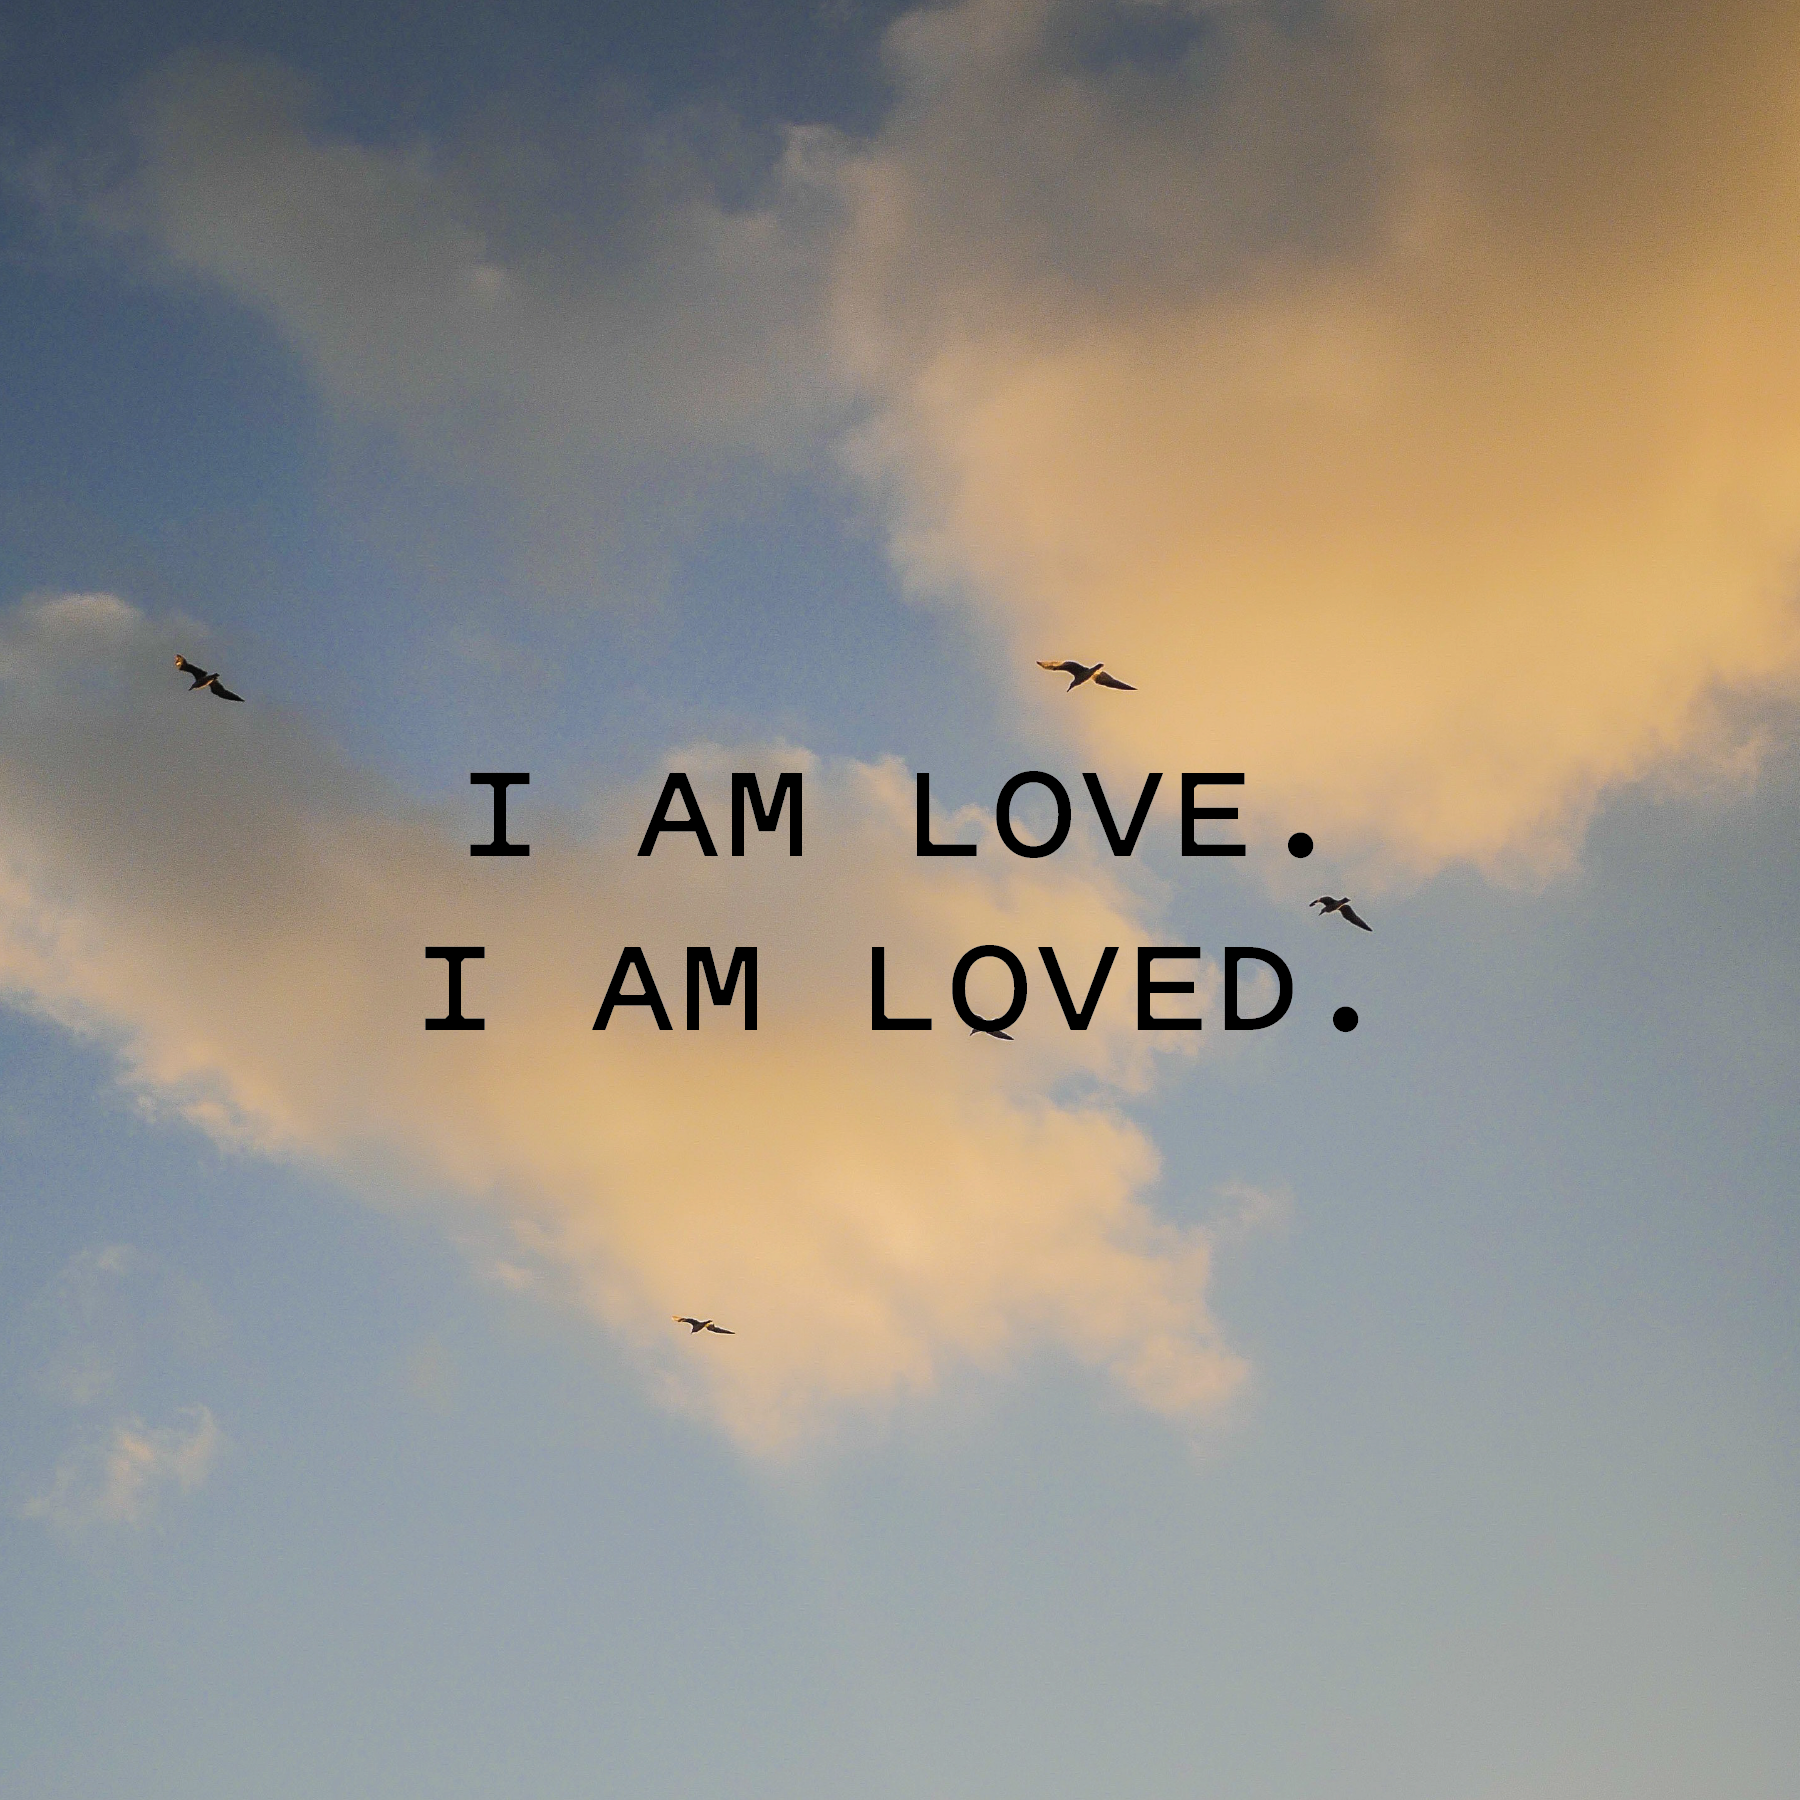 THESE AFFIRMATIONS WILL CHANGE YOUR DAY